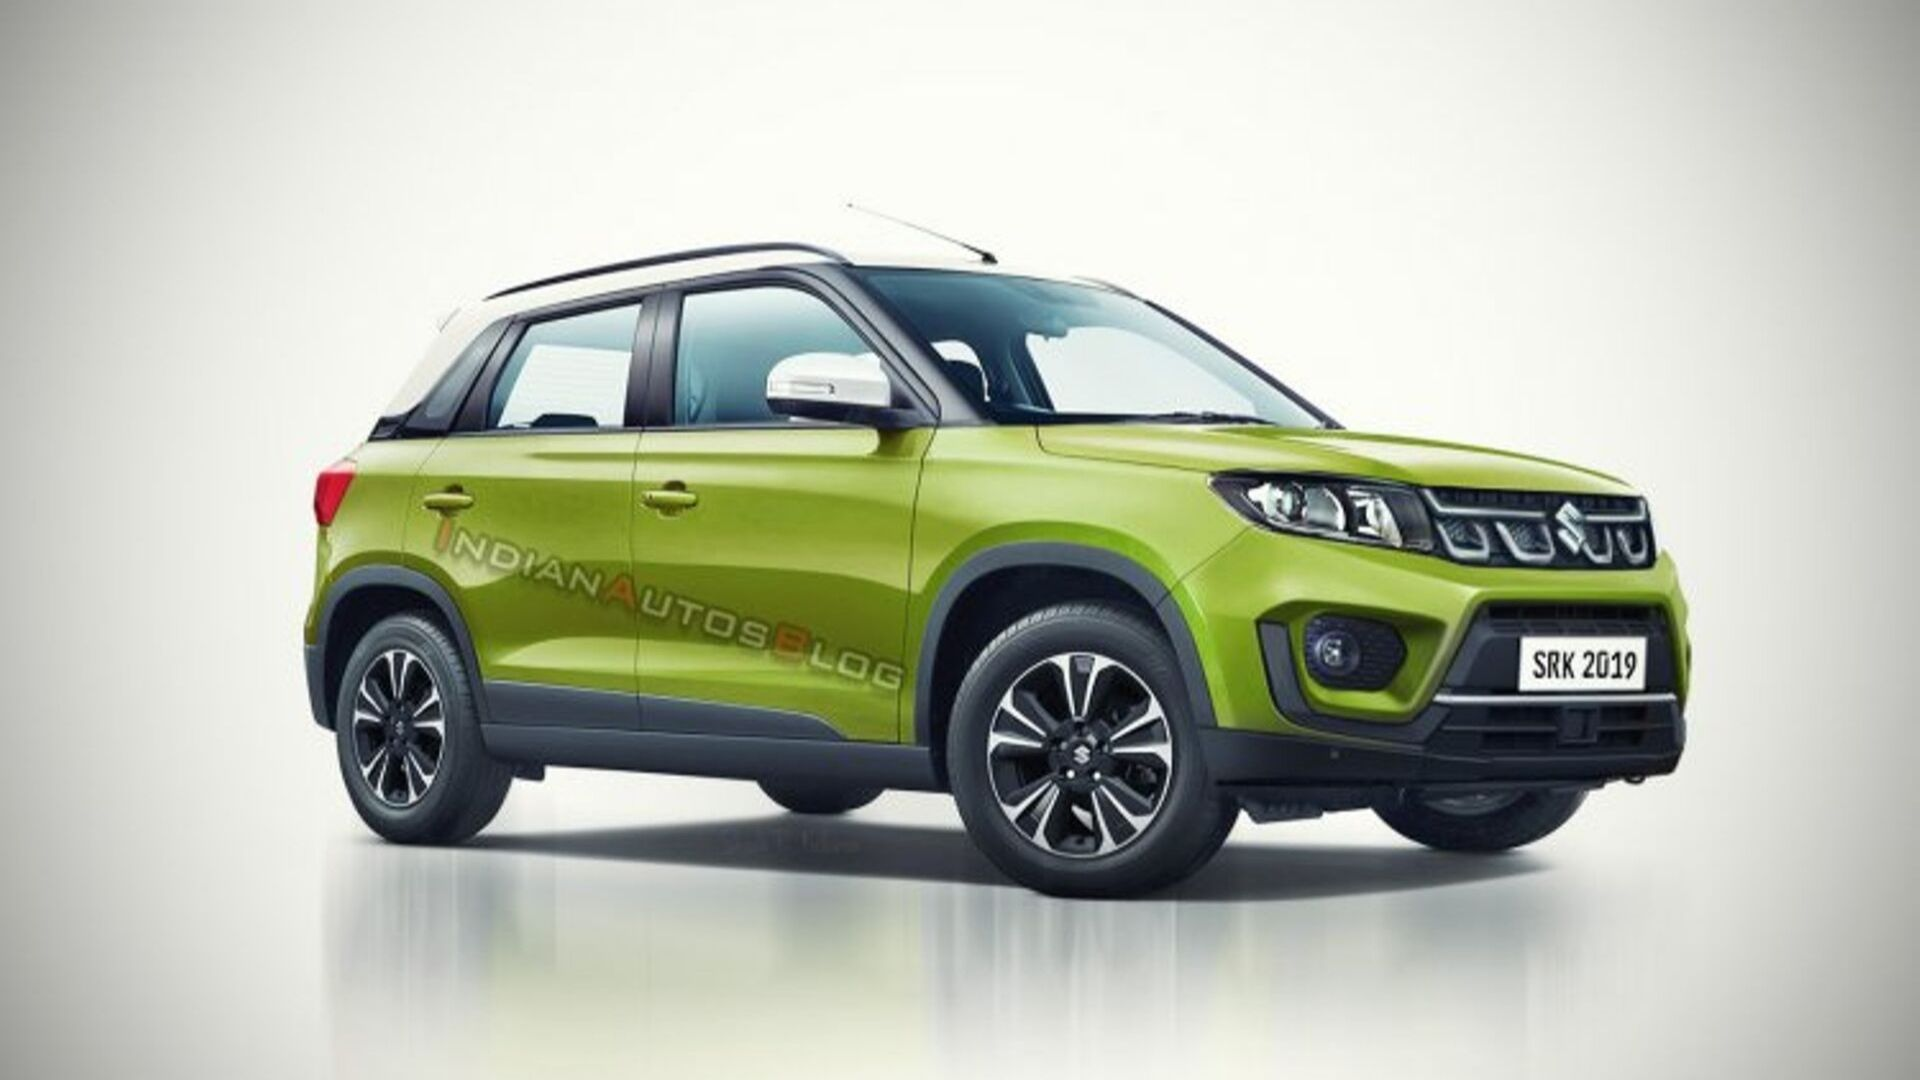 Upcoming 2020 Maruti Vitara Brezza Facelift Imagined Based On Spyshot - GaadiWaadi.com thumbnail